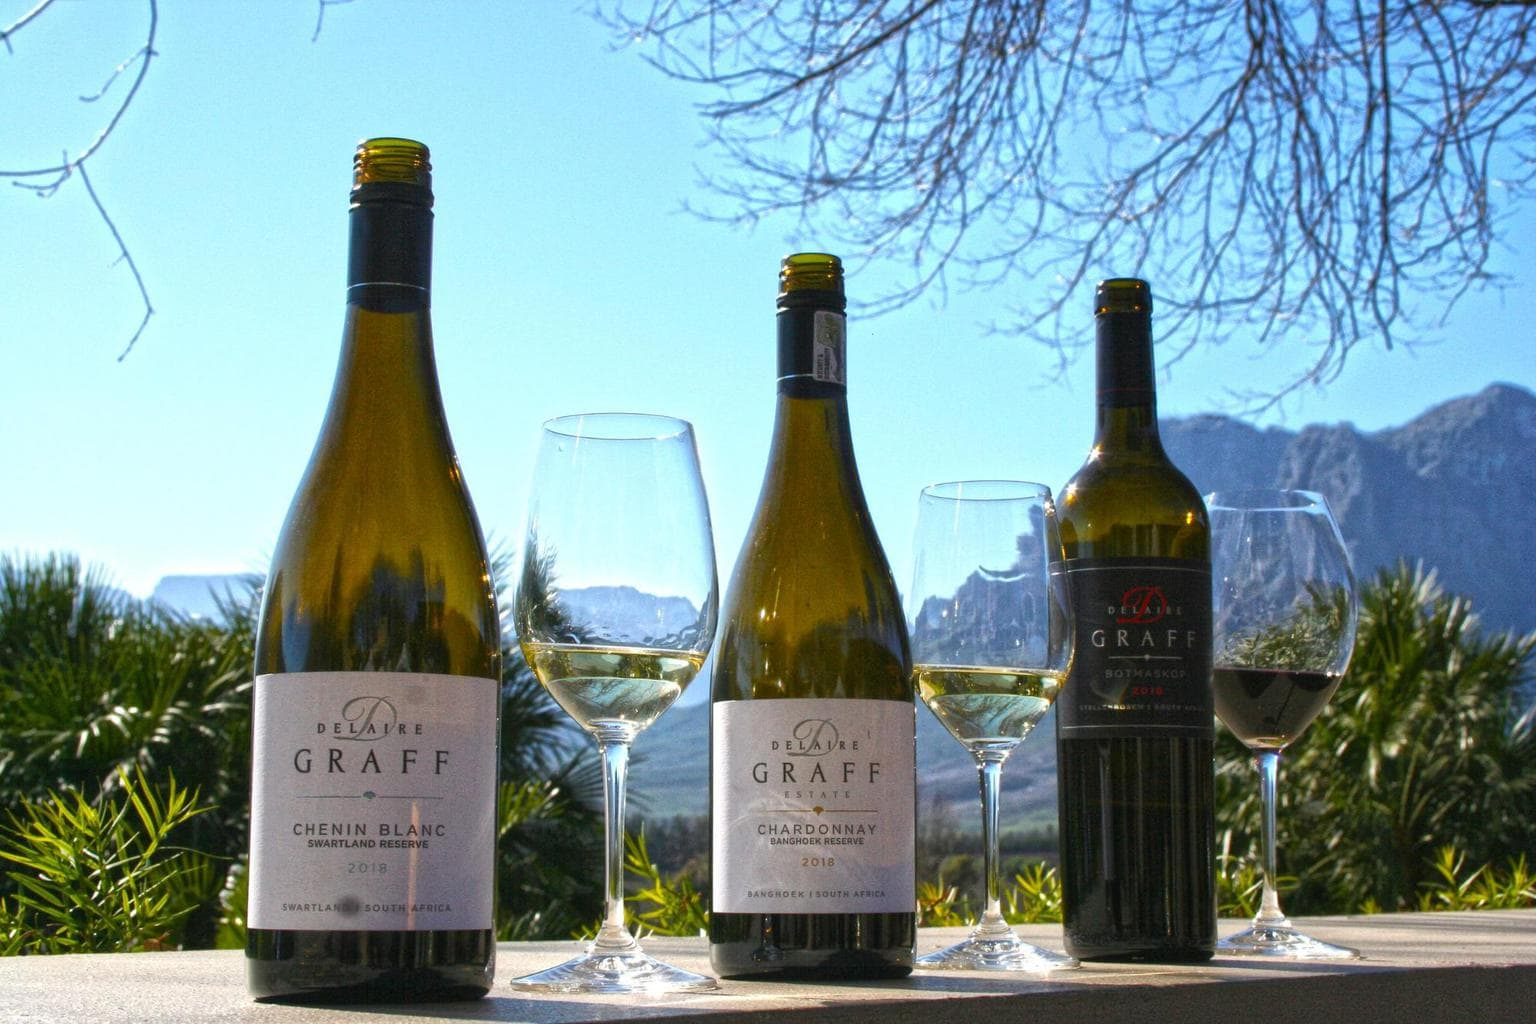 Three wines at Delaire Graff